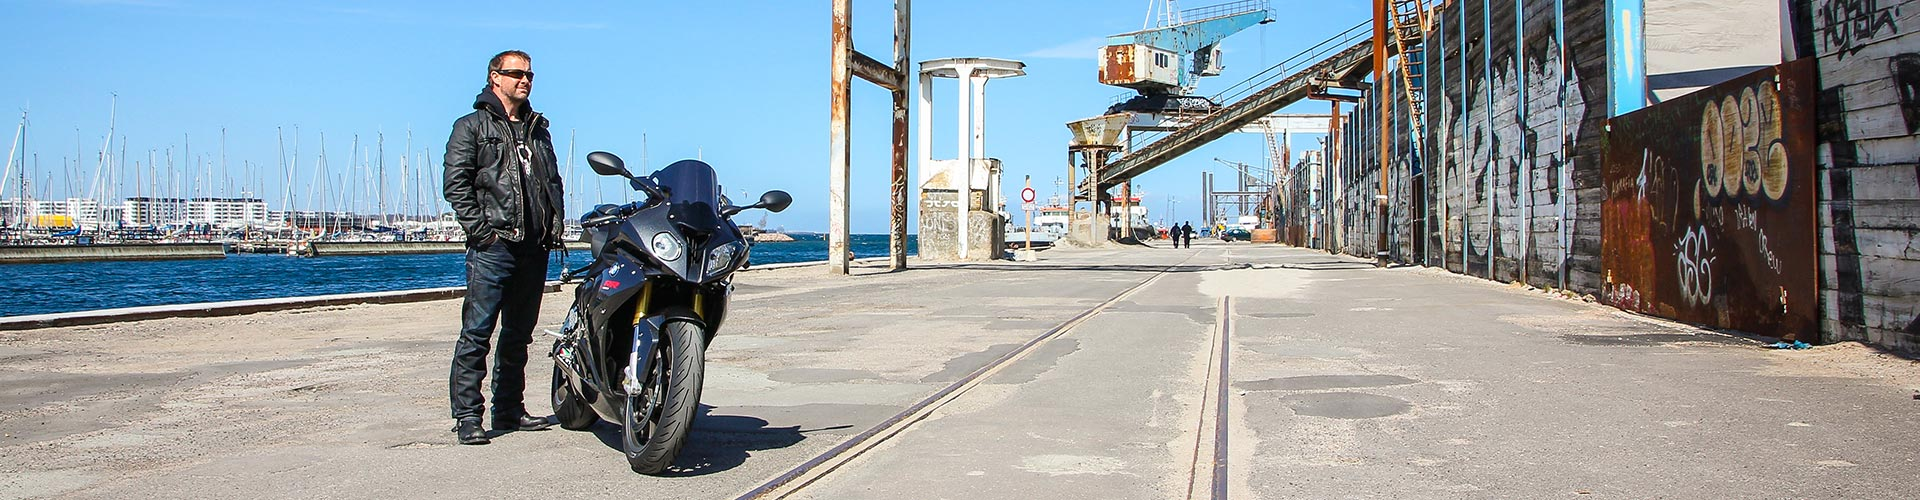 DISCOVER DENMARK BY MOTORCYCLE